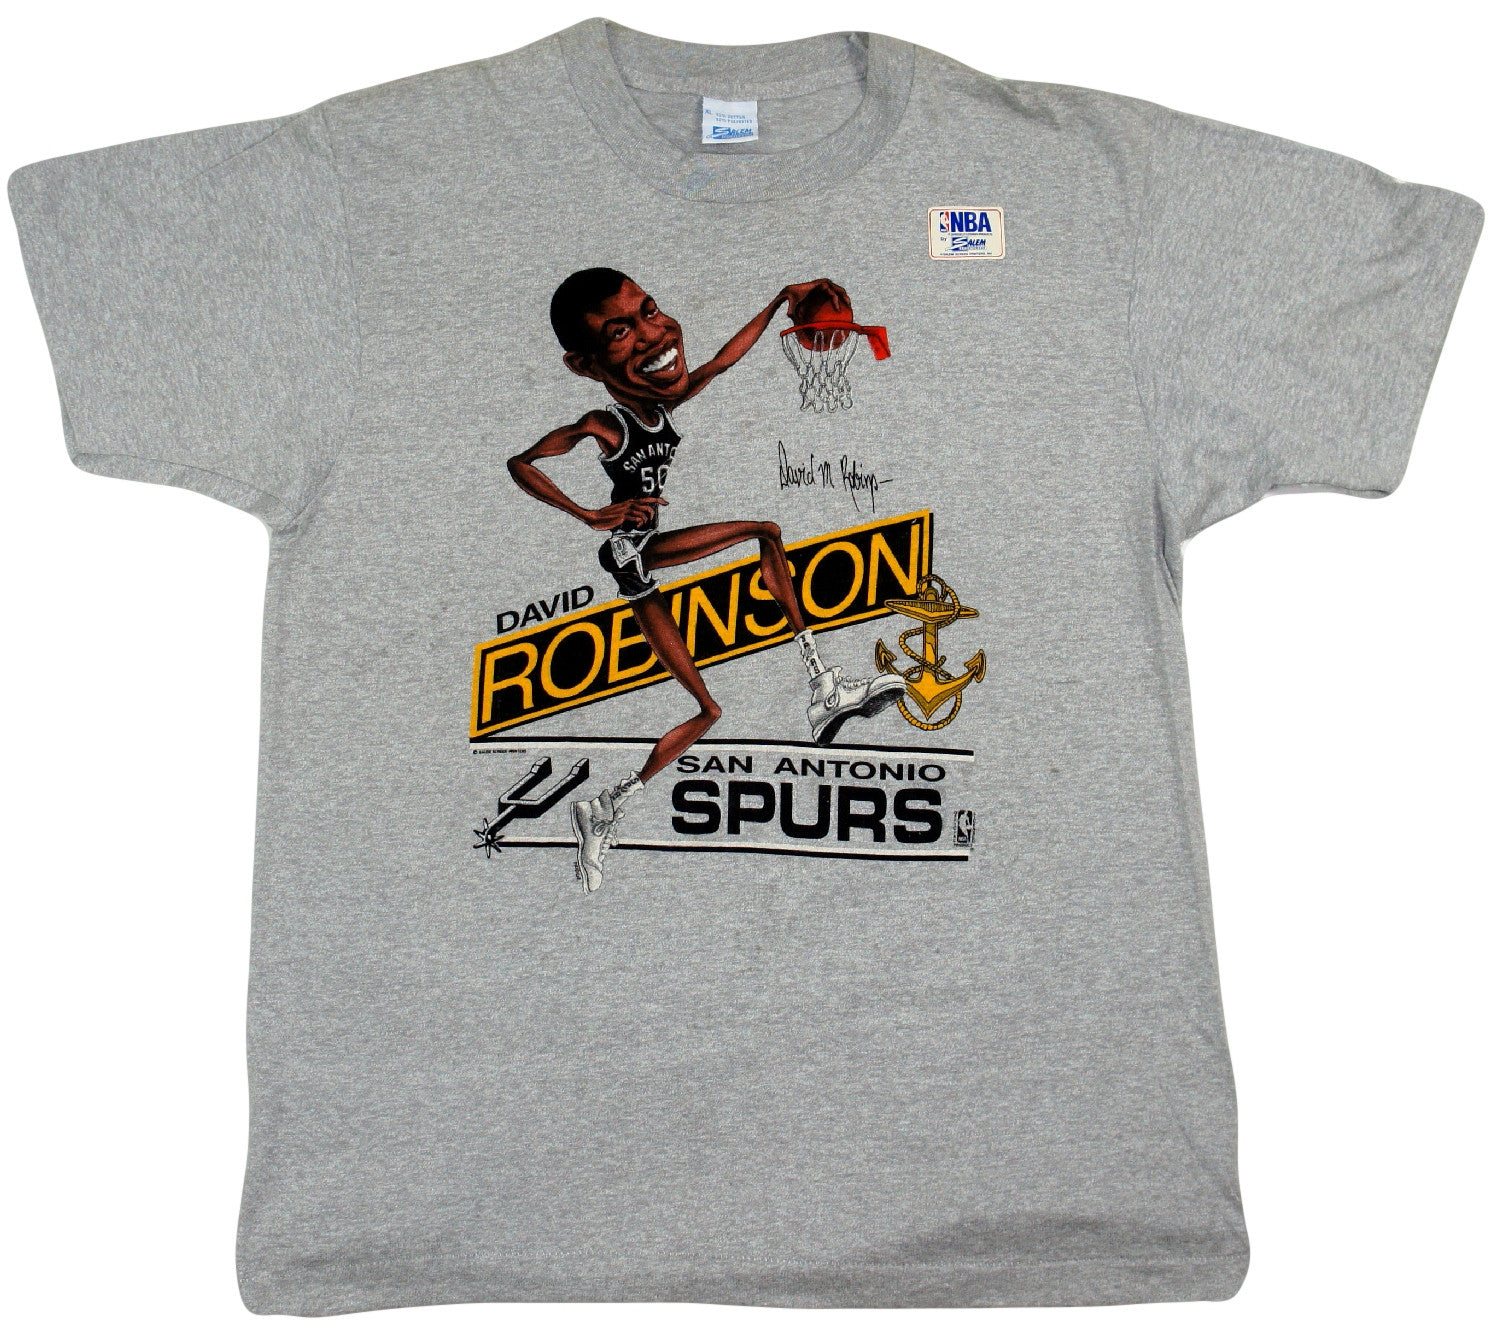 David Robinson Caricature Shirt - And Still